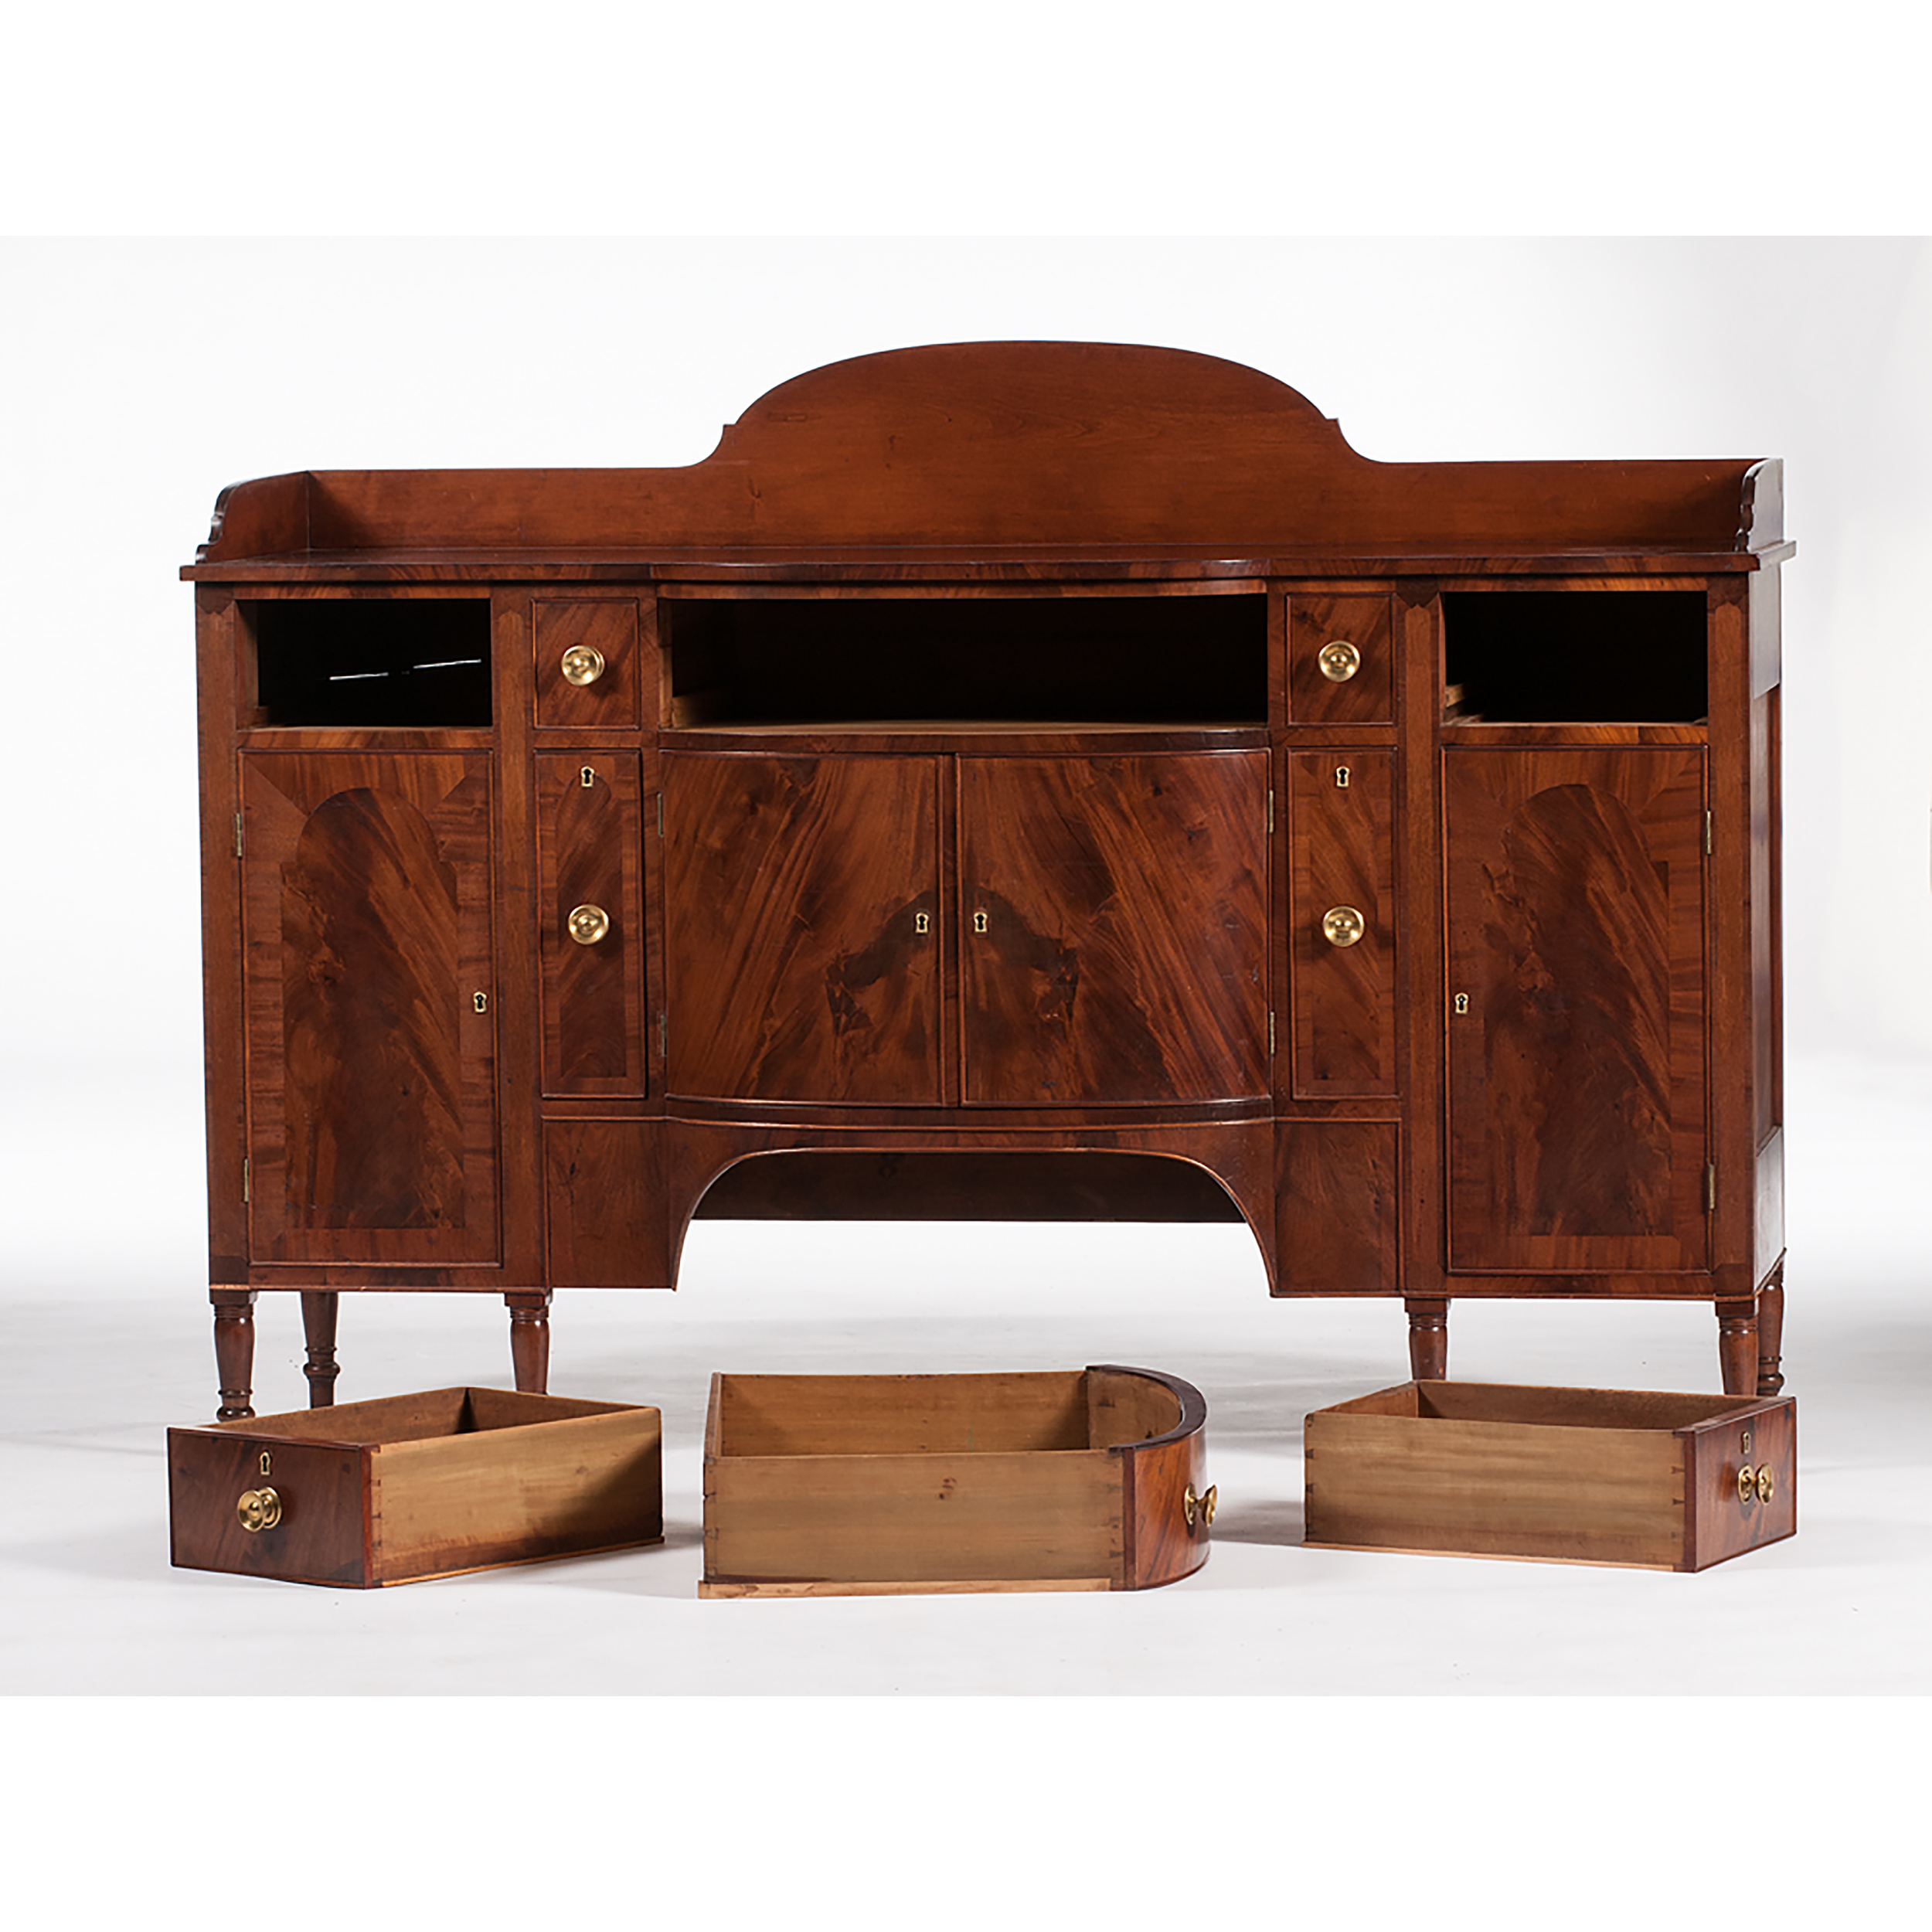 Federal Baltimore Sideboard  Cowans Auction House: The ...